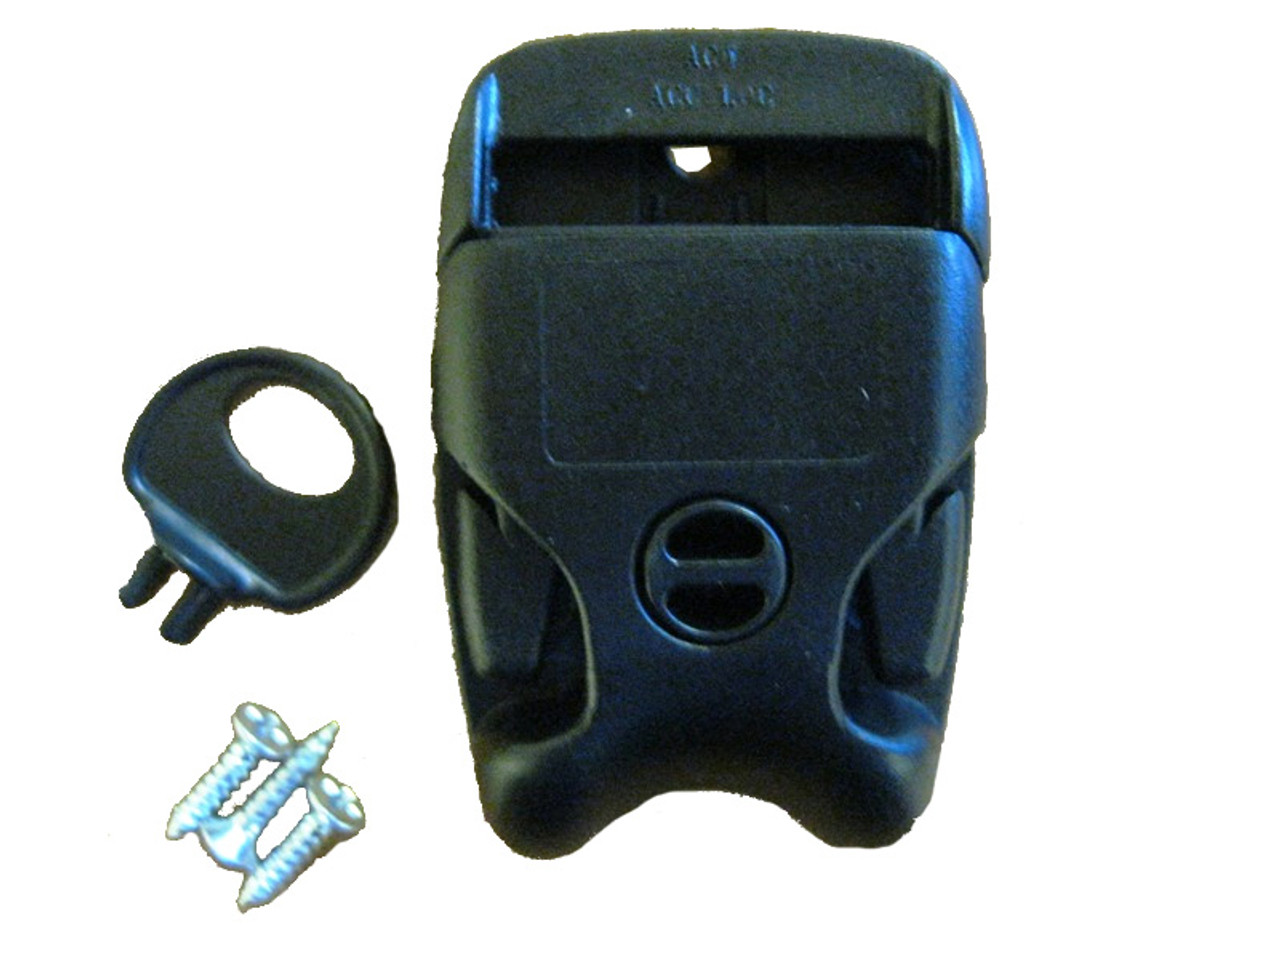 Master Spa - X802200 - Castle Spa Cover Lock Set - Front View